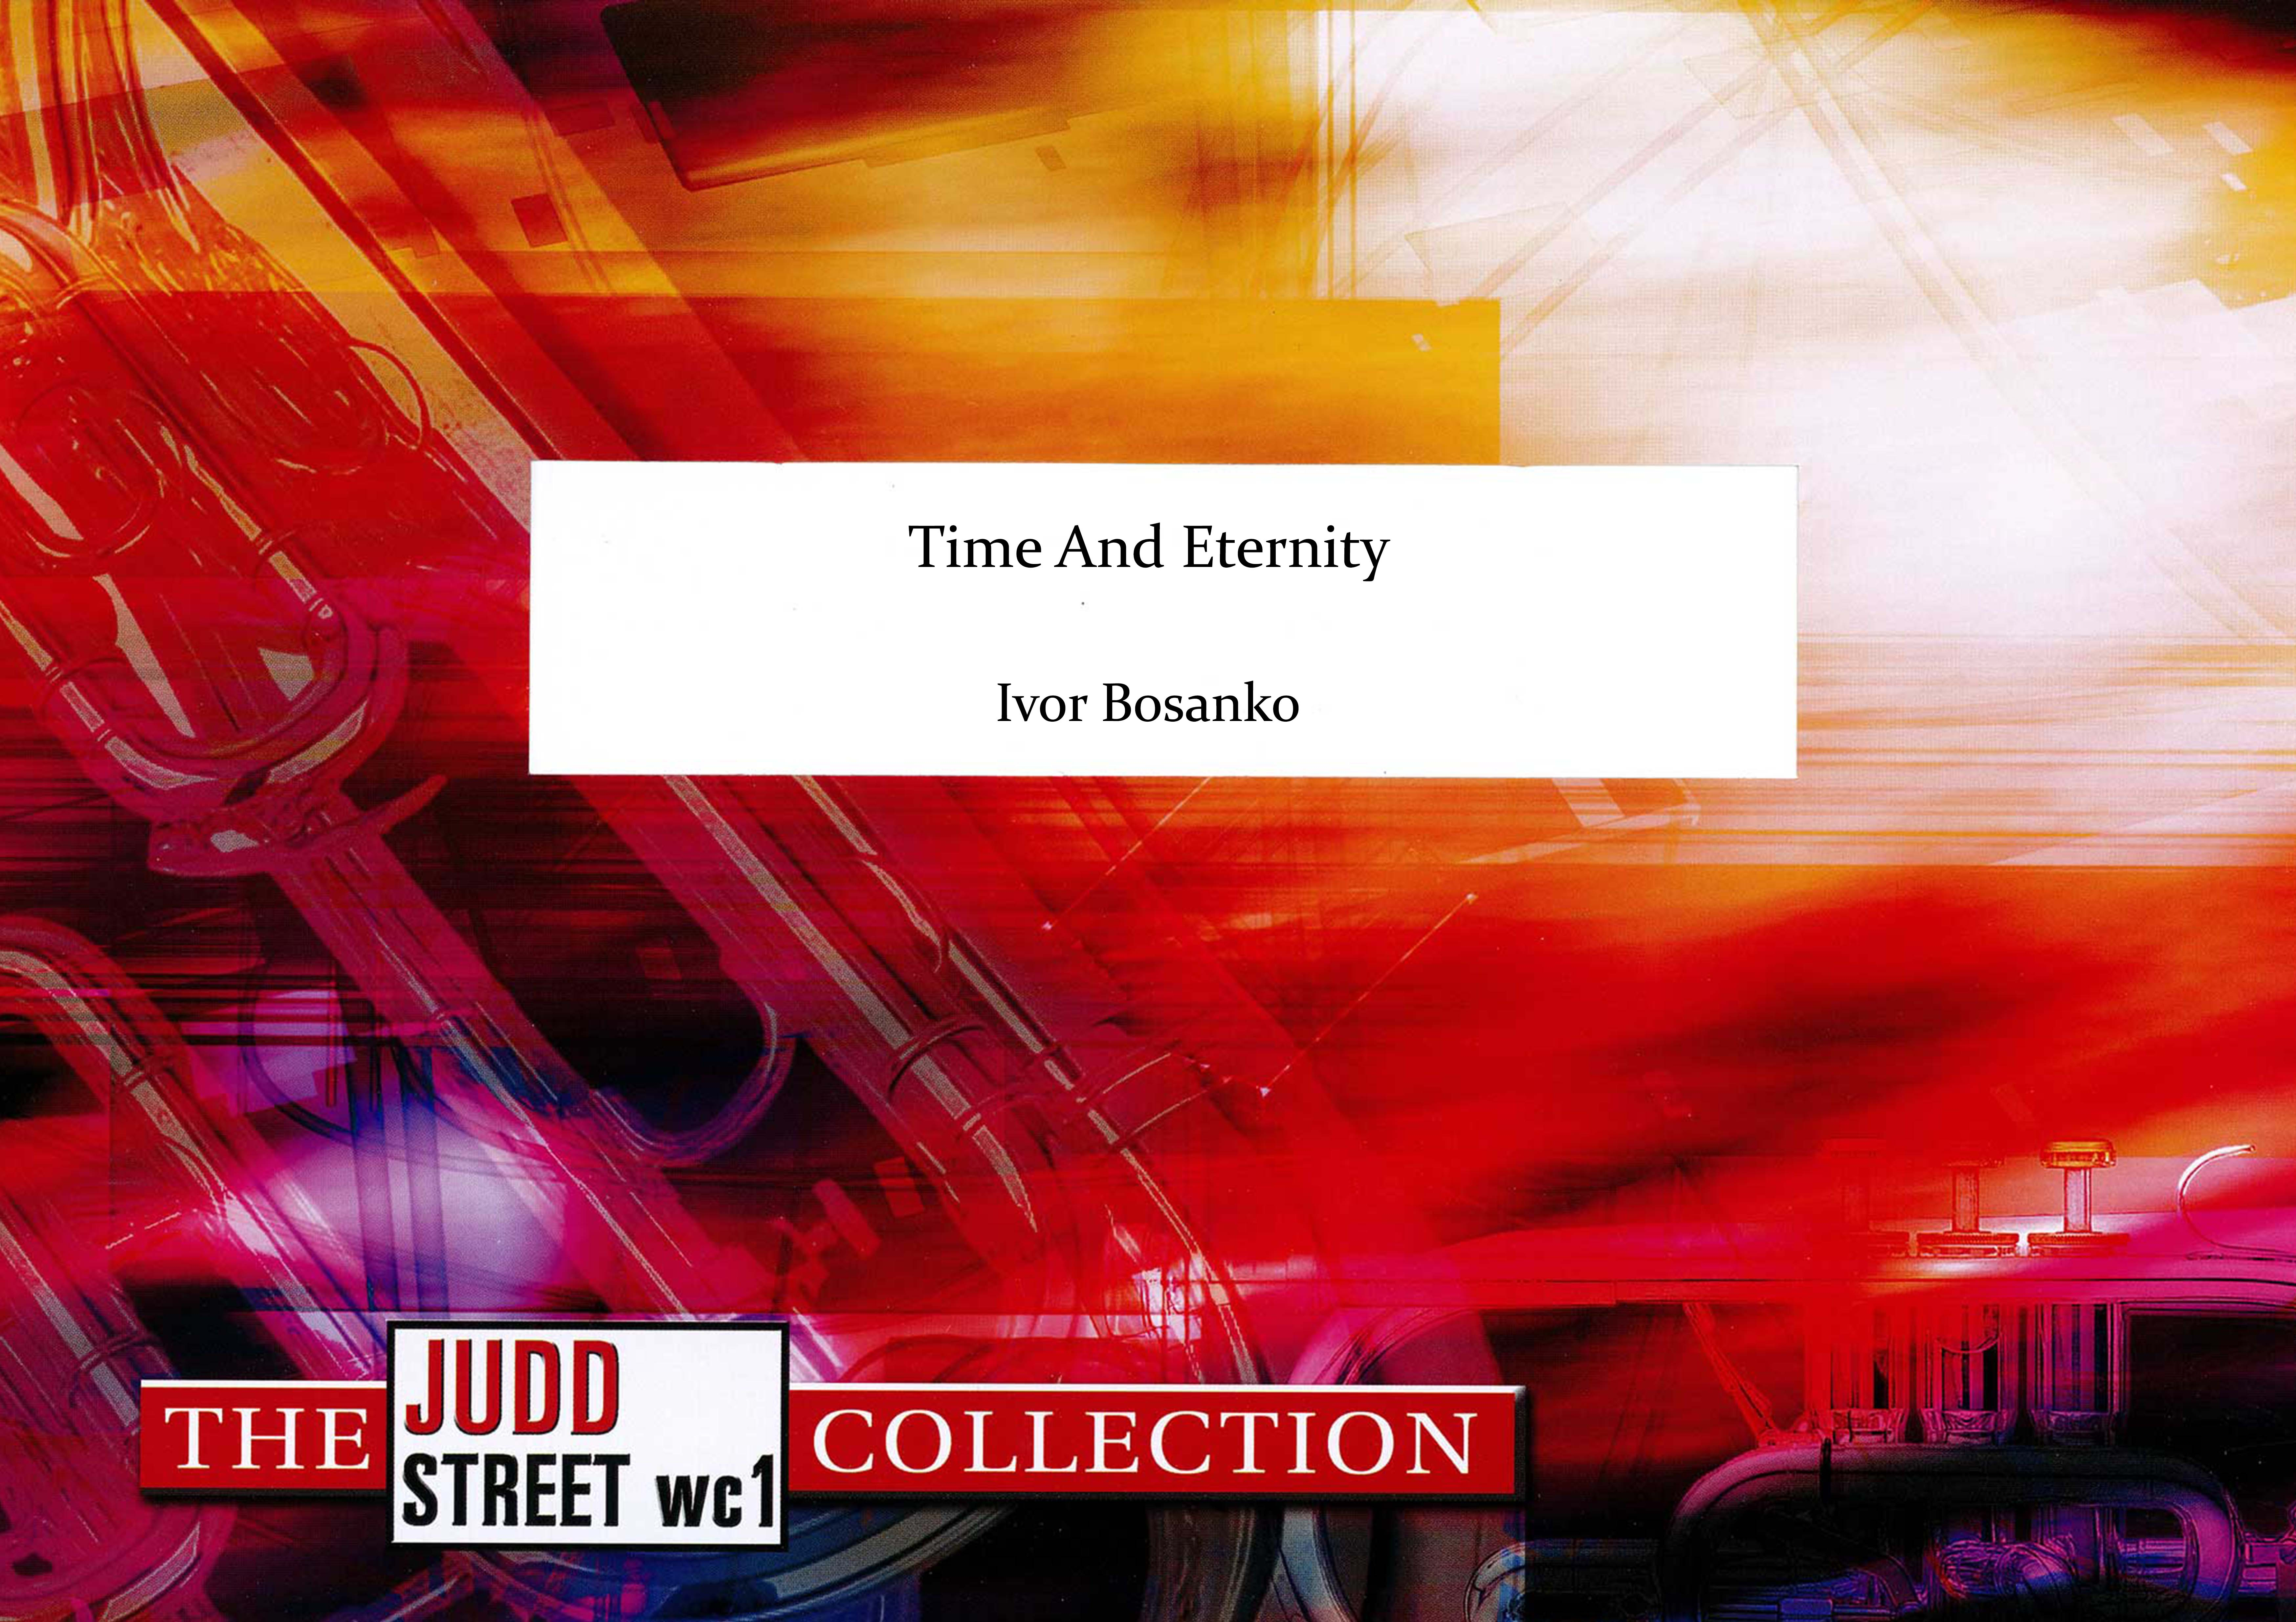 Time And Eternity (Cornet And Euphonium Duet with Brass Band - Score only)